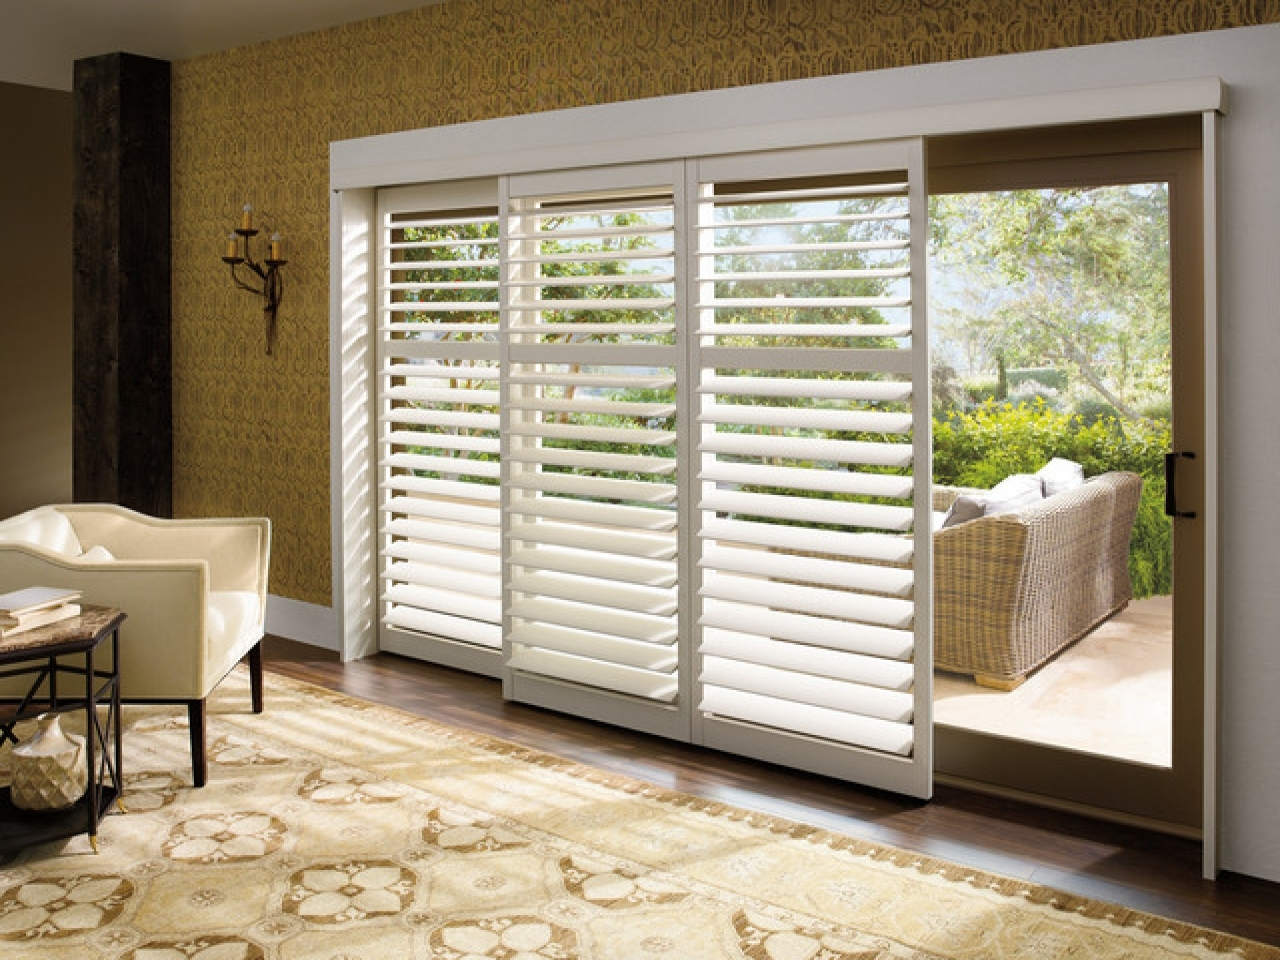 Blind Options For Sliding Patio Doors1280 X 960